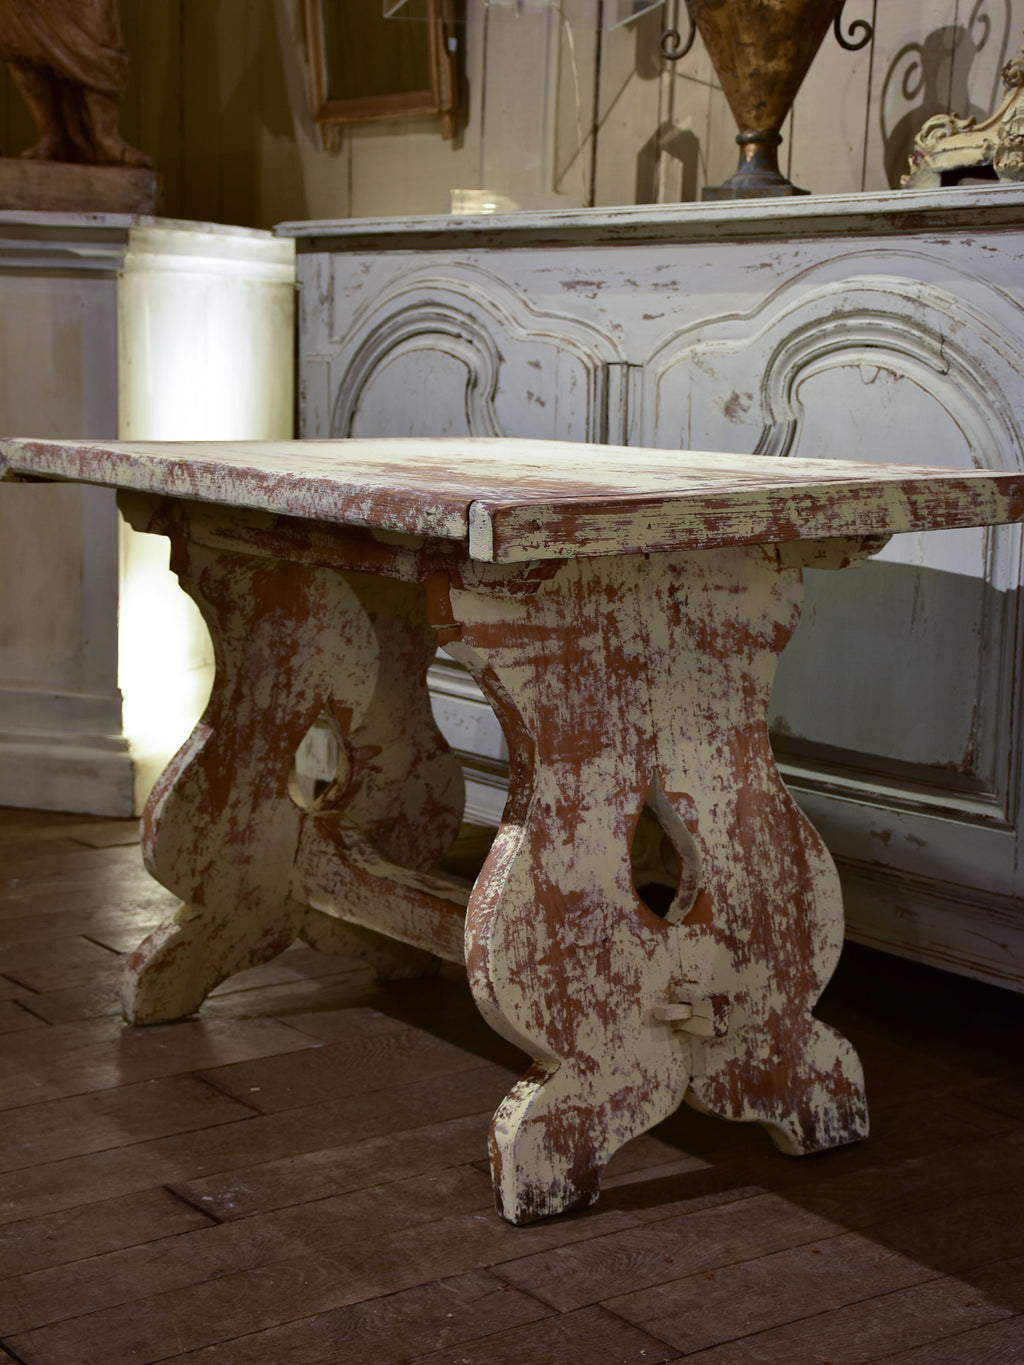 Chunky and rustic Swiss table with white patina - 1 of 2